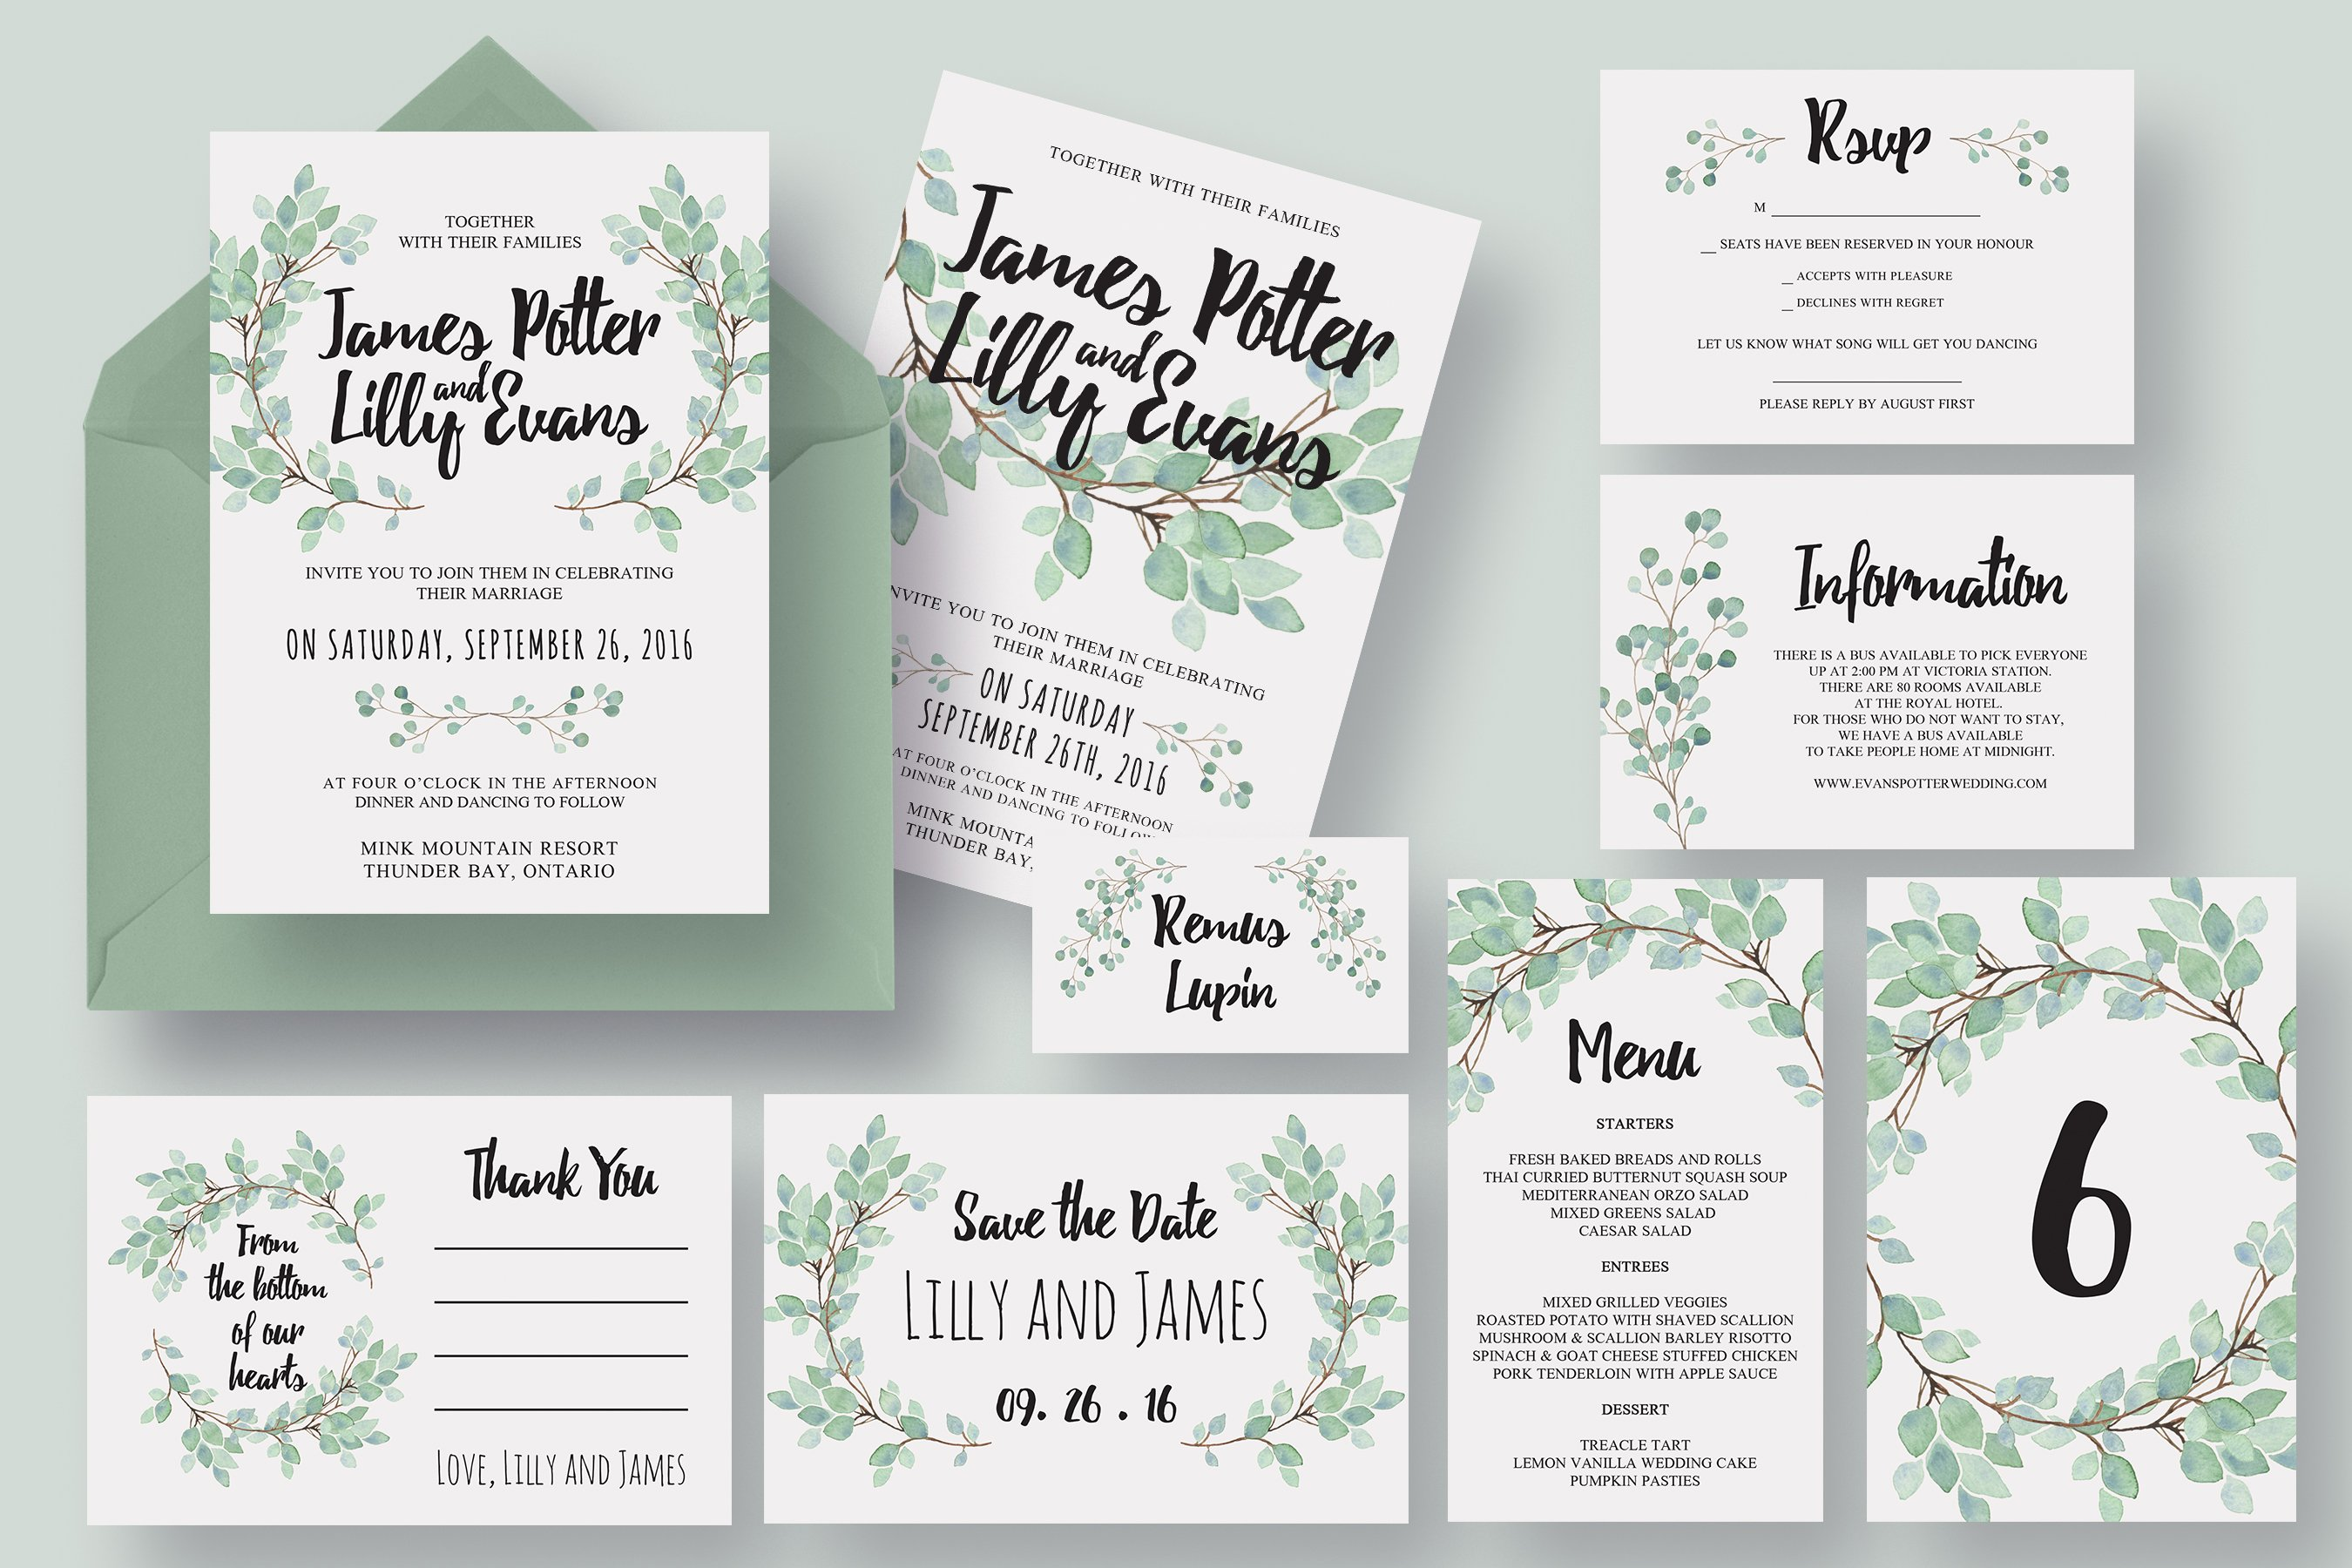 Eucalyptus wedding invitation suite invitation templates eucalyptus wedding invitation suite invitation templates creative market stopboris Gallery